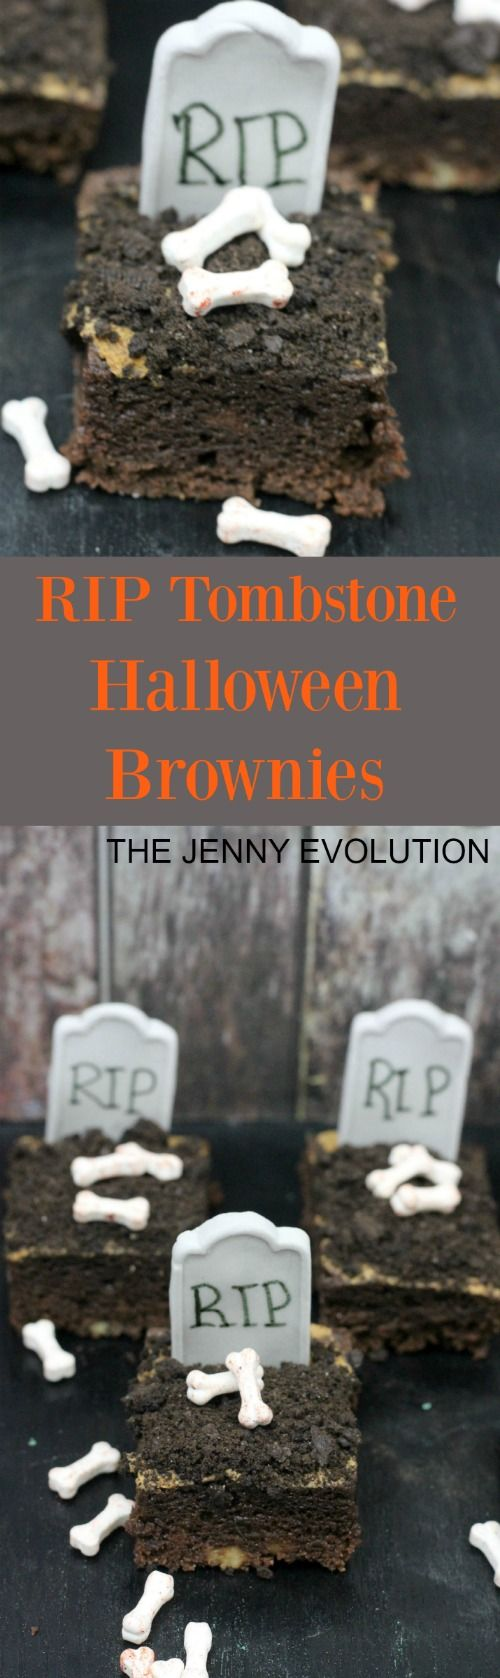 RIP Tombstone Halloween Brownies Recipe + Tutorial | The Jenny Evolution